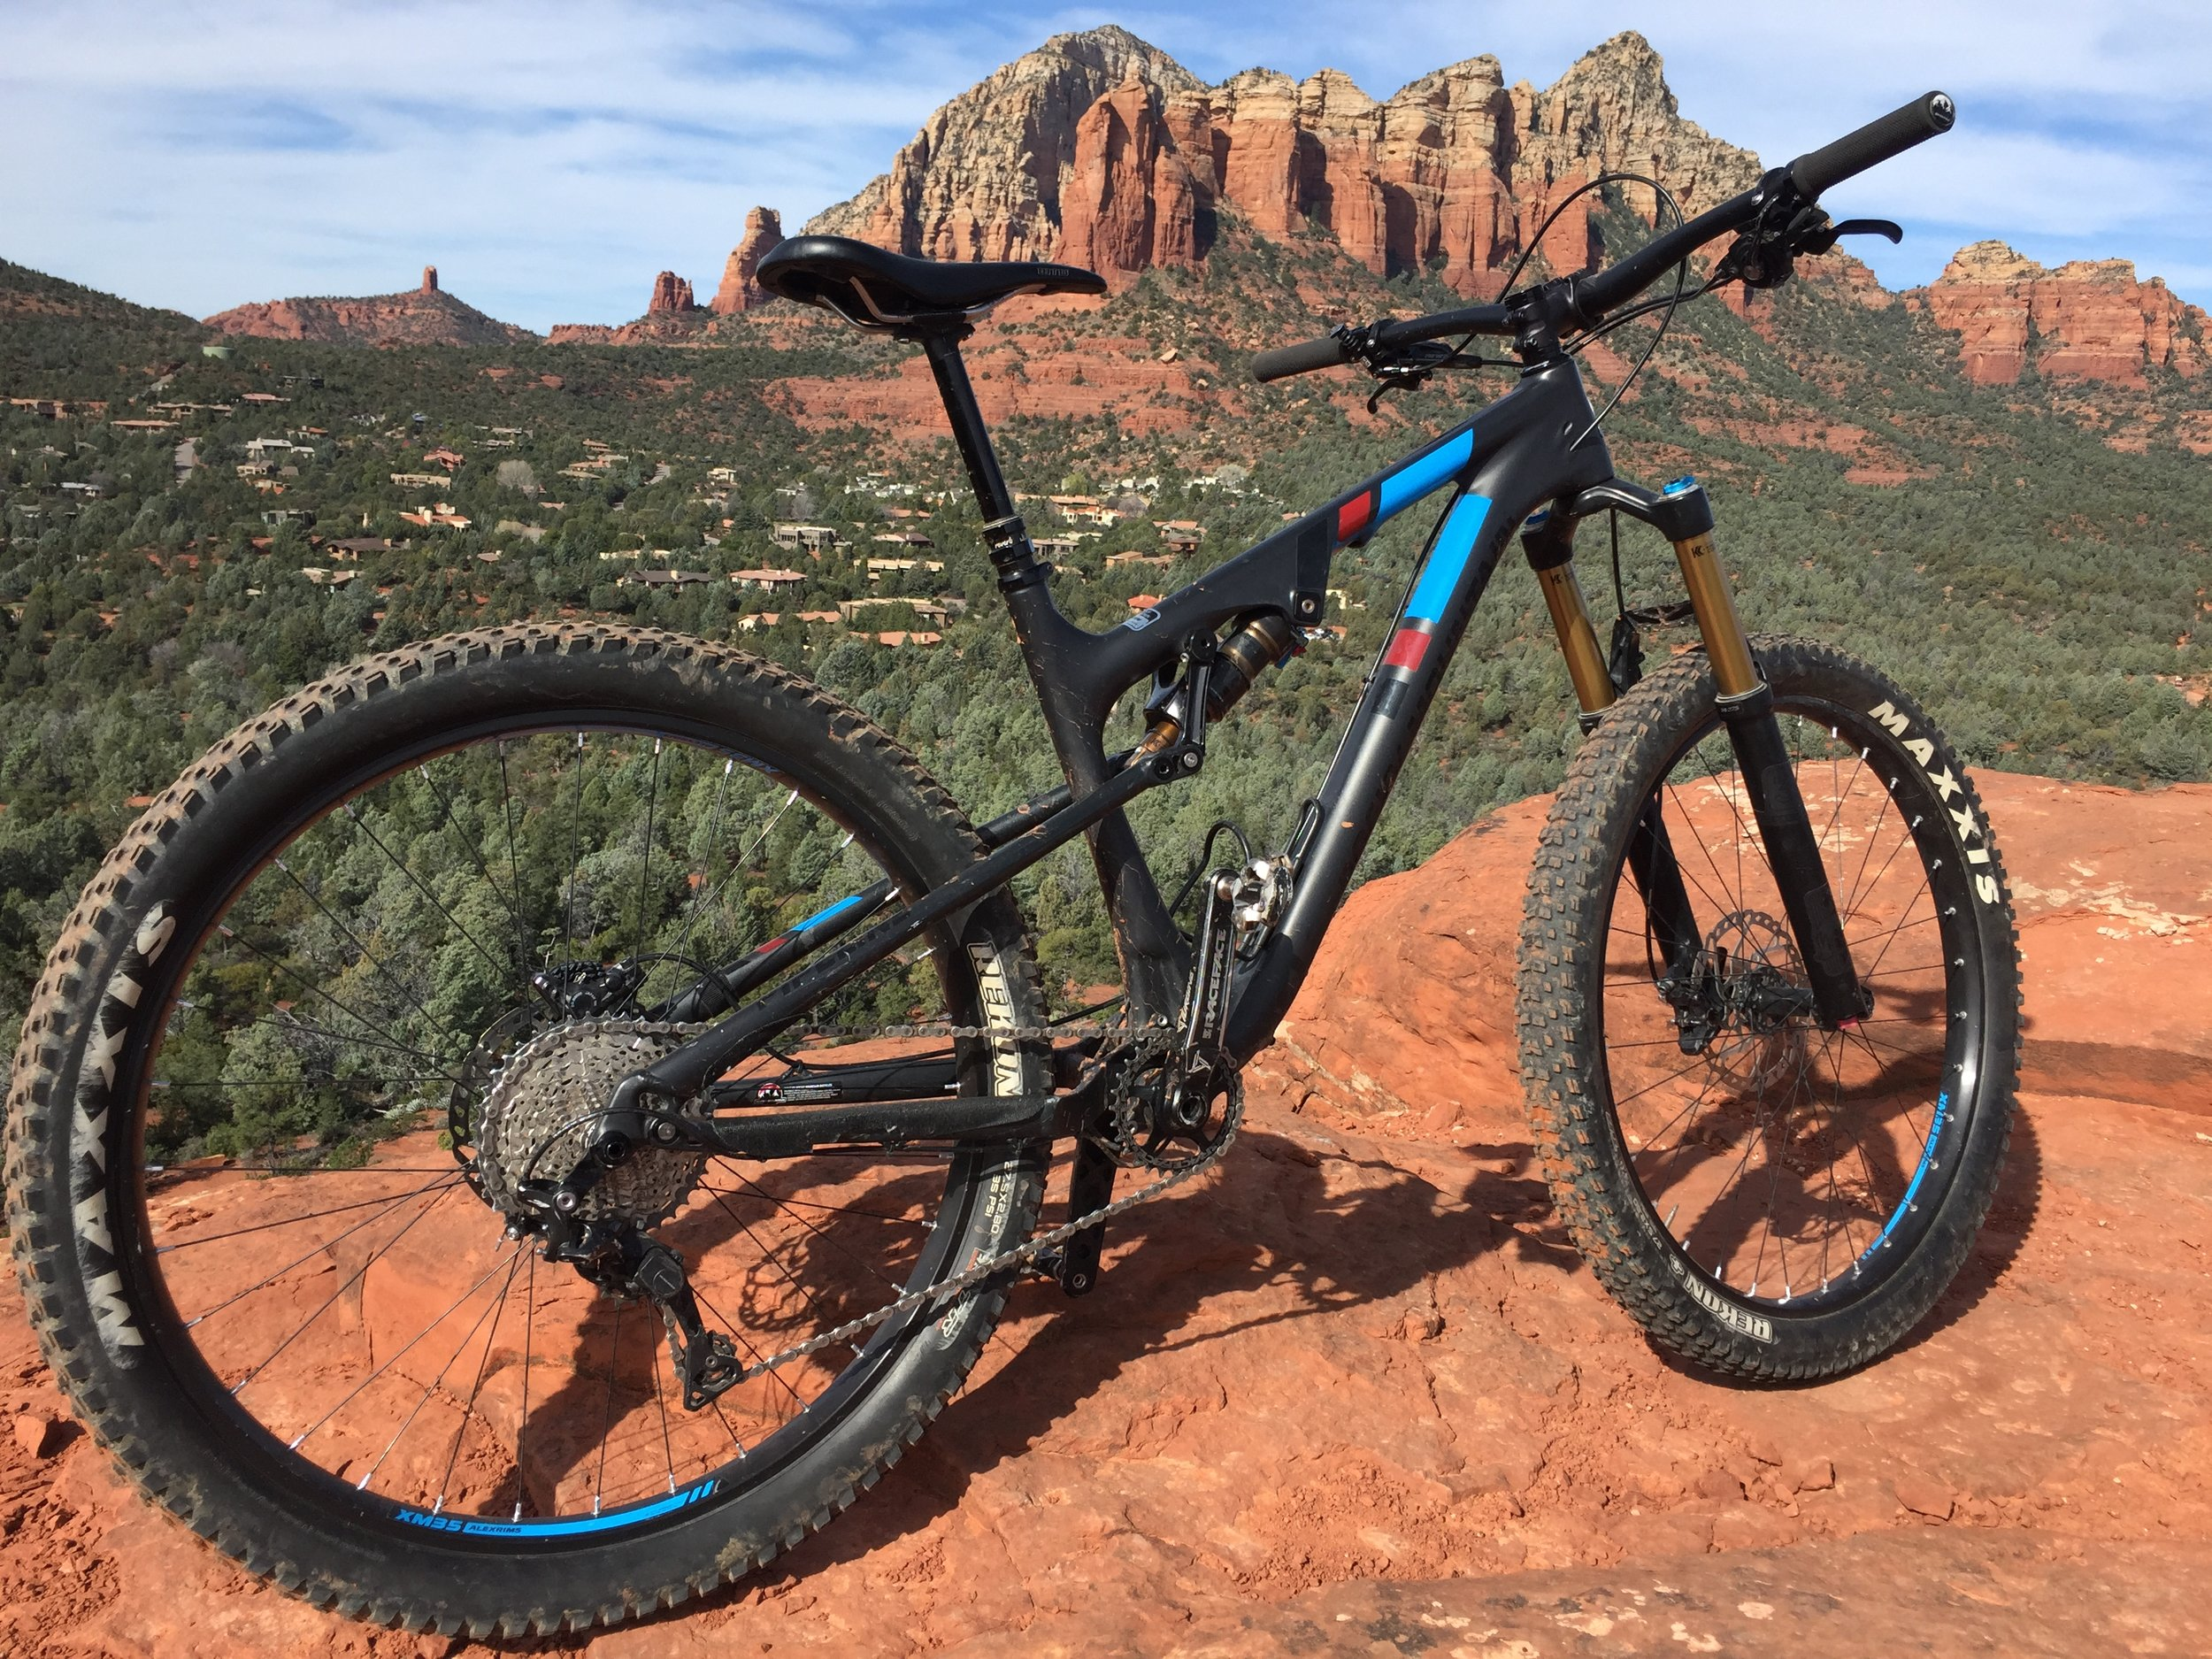 This bike is kind of an unsuspecting monster. Tune-able suspension and head tube, with XT and Kashima Coated shocks front and rear for $4800 ain't bad either.